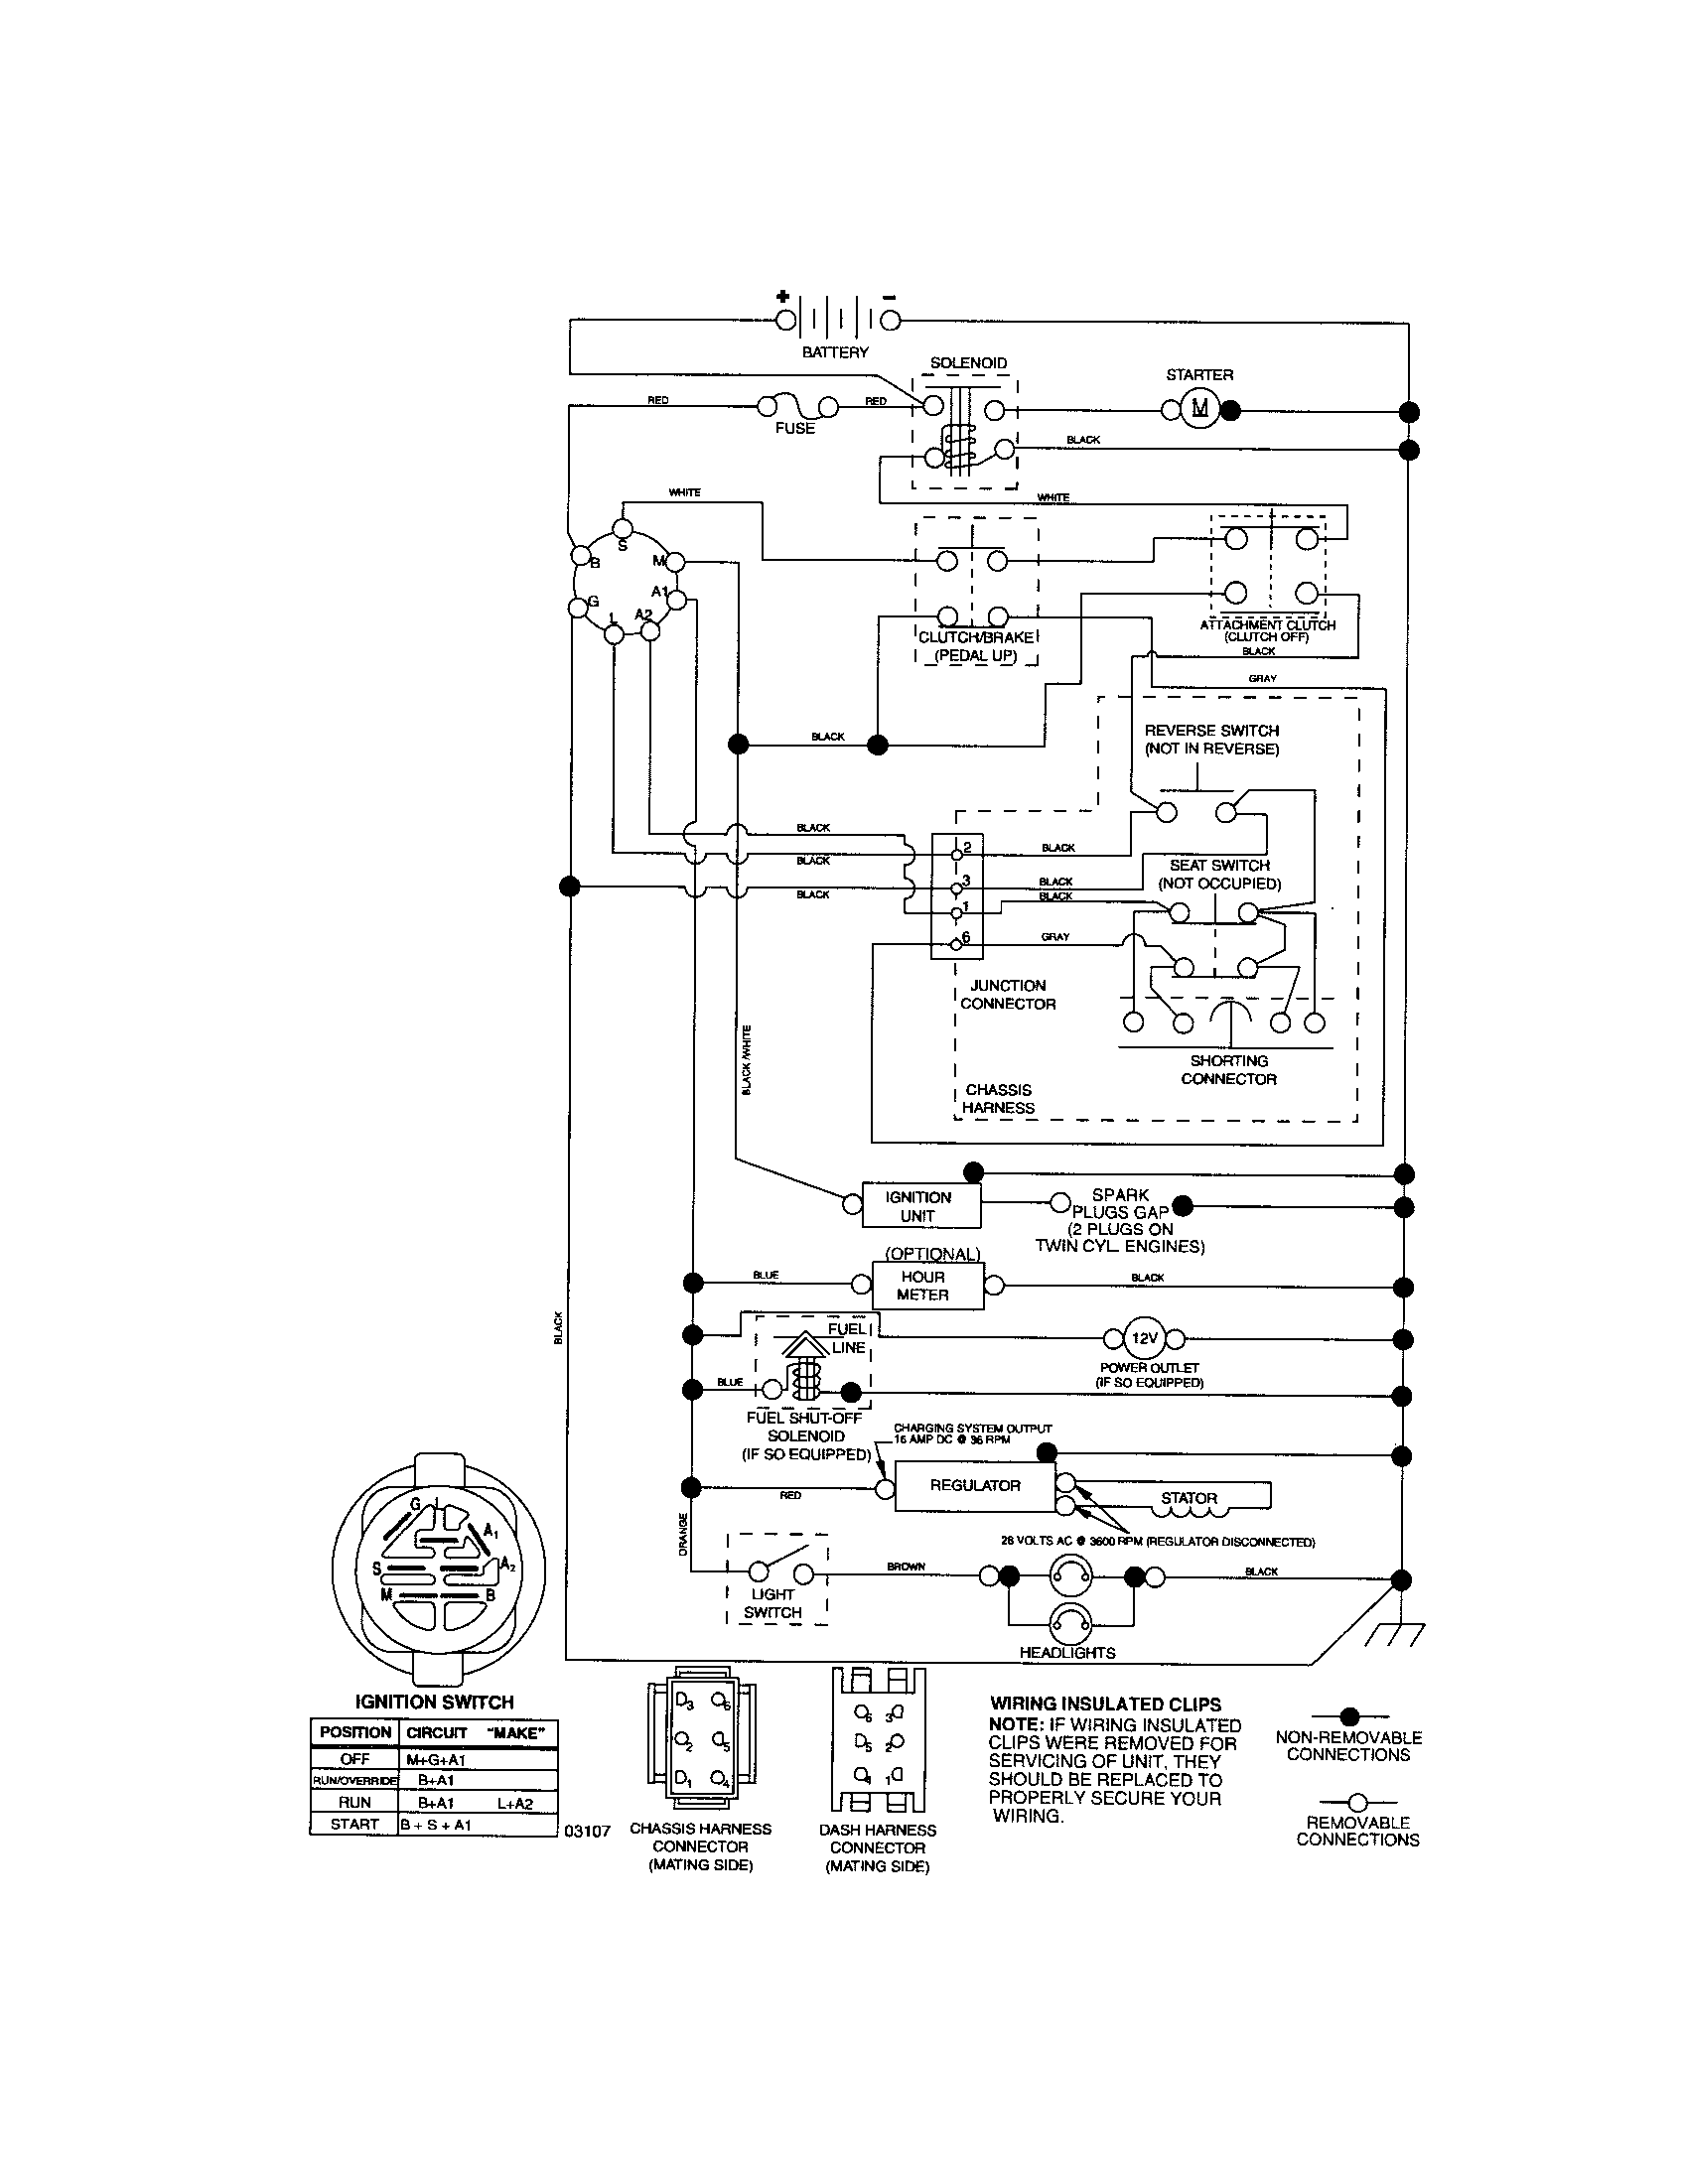 6af5f1447fd13c8443376822ddc1e105 craftsman riding mower electrical diagram wiring diagram  at crackthecode.co